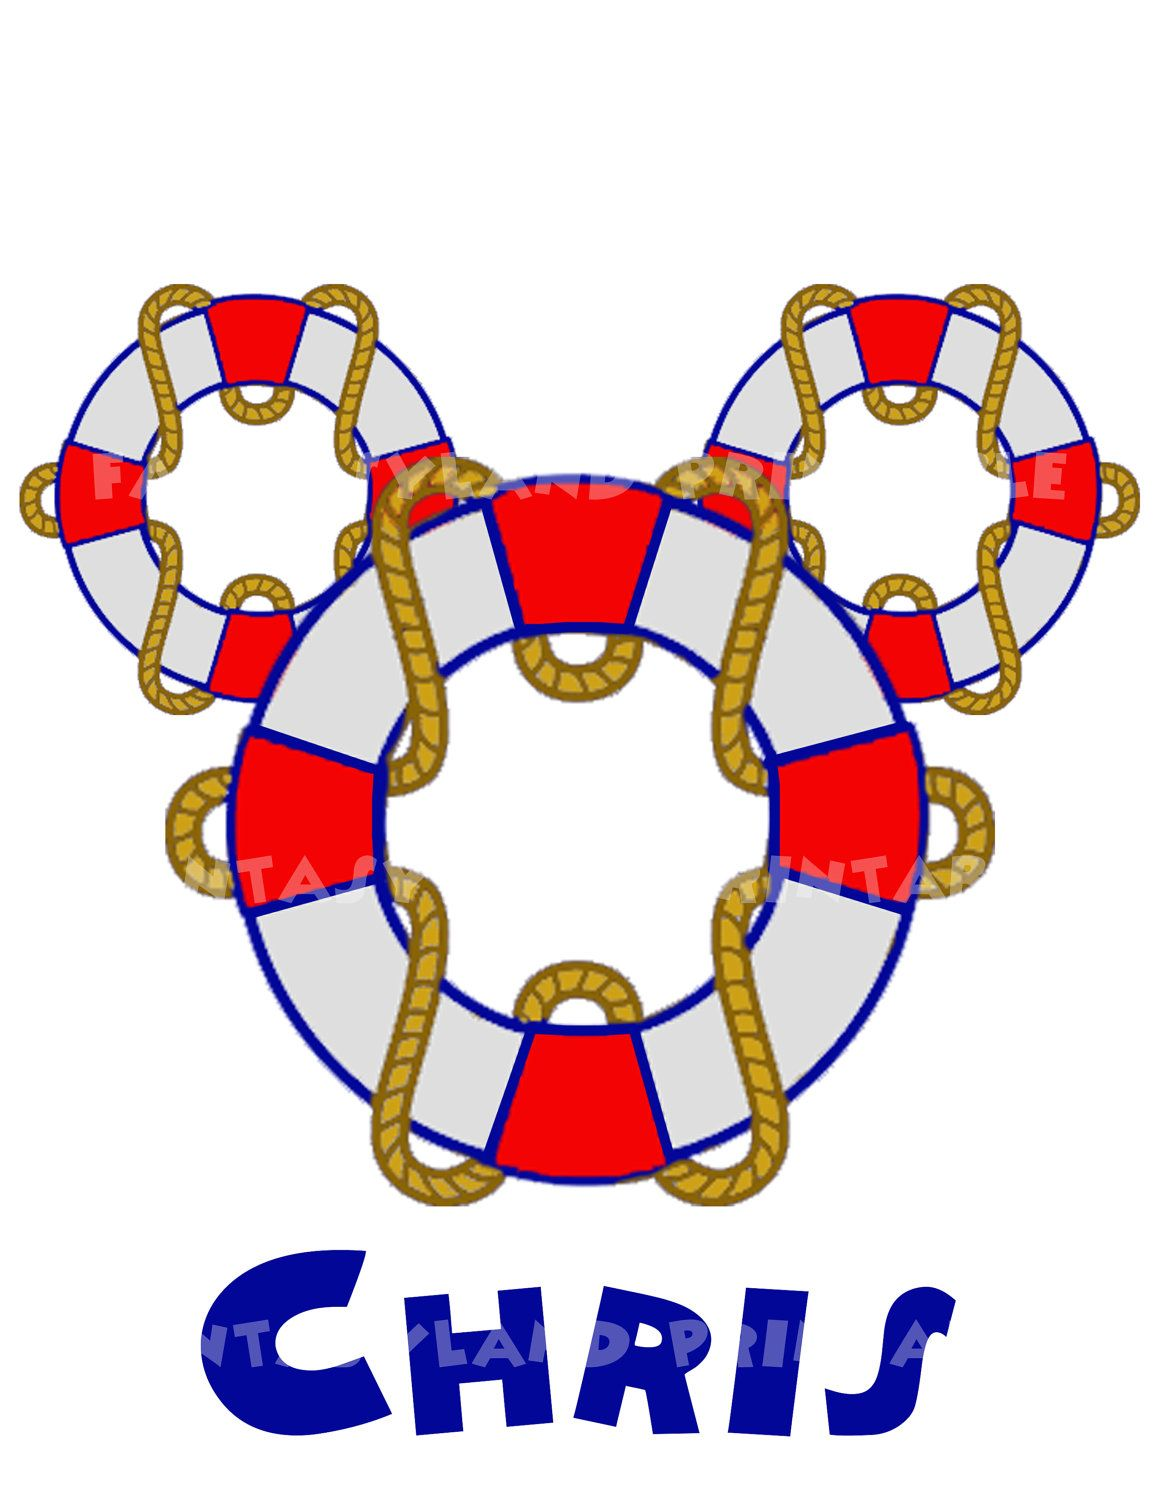 disney cruise ship clipart at getdrawings com free for personal rh getdrawings com disney cruise ship clipart disney cruise clipart